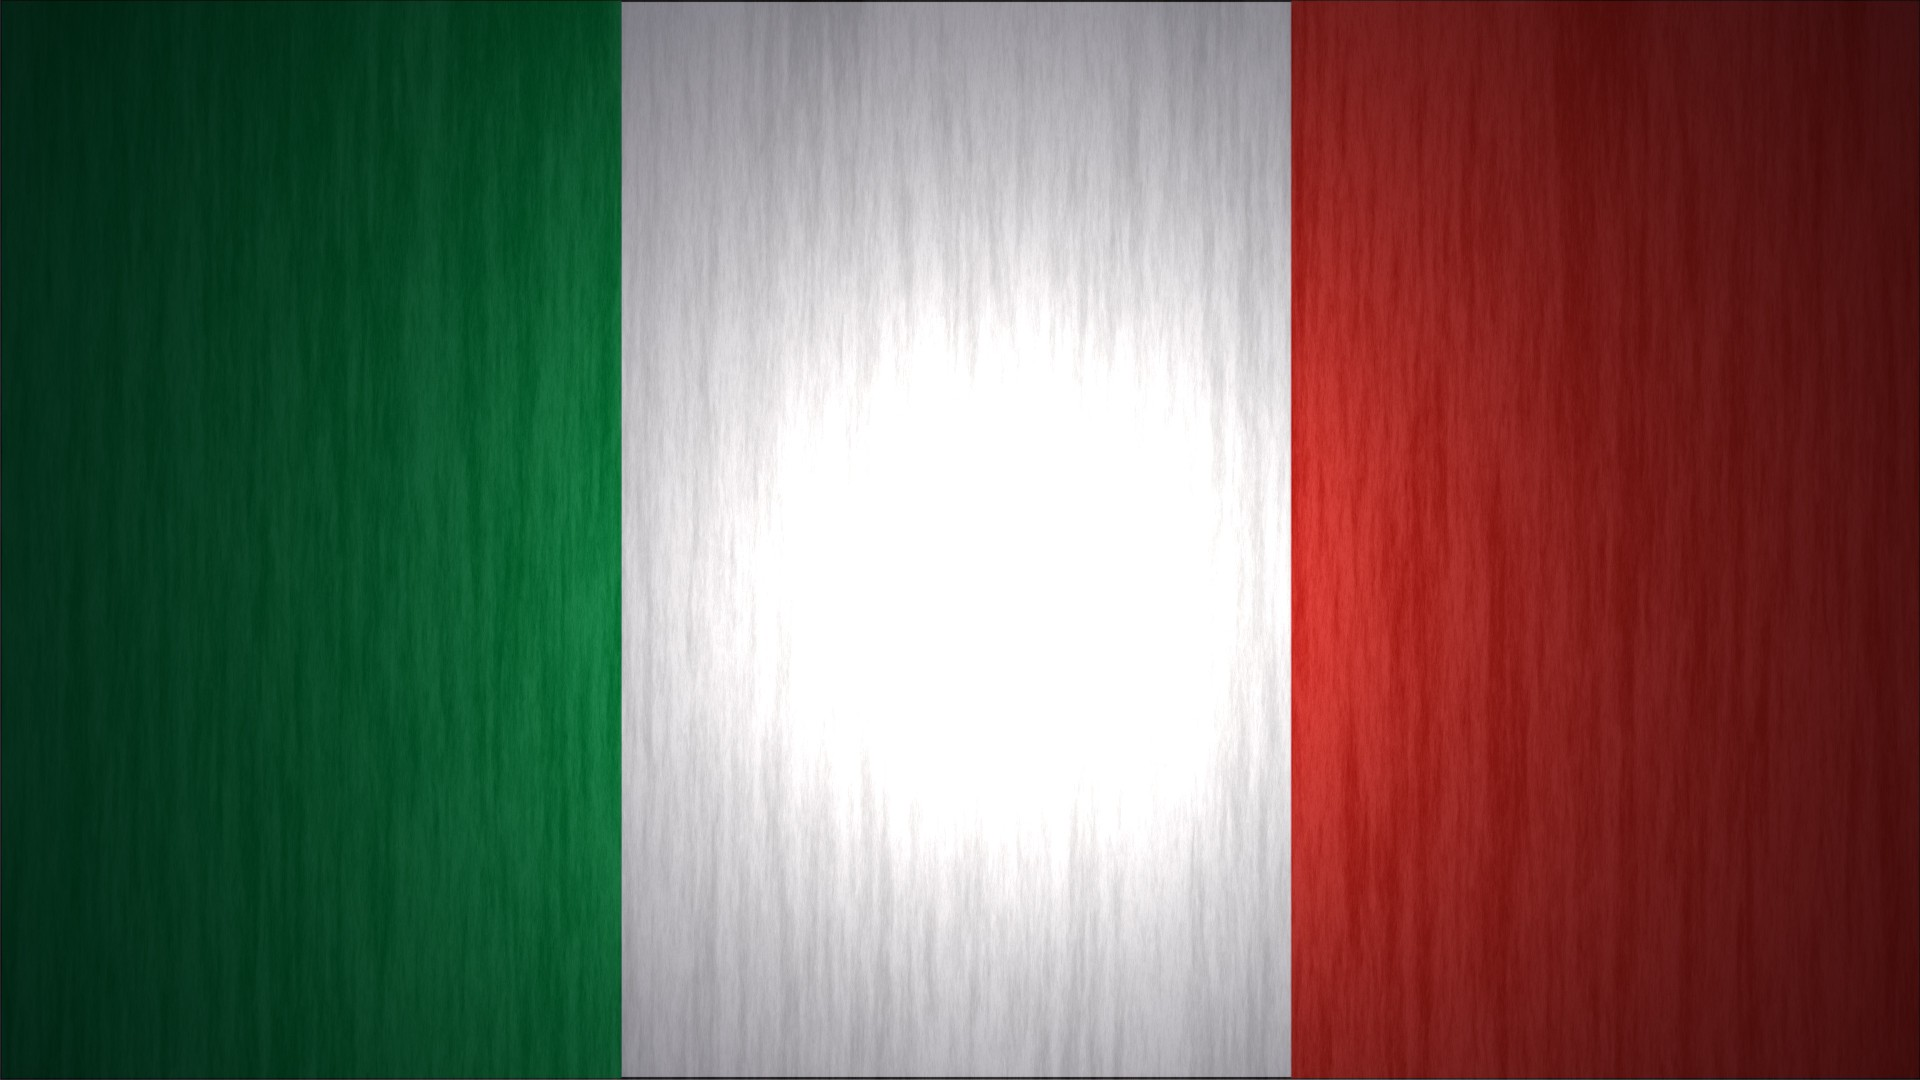 Italian Flag Images Wallpapers 27 Wallpapers Adorable Wallpapers 1920x1080